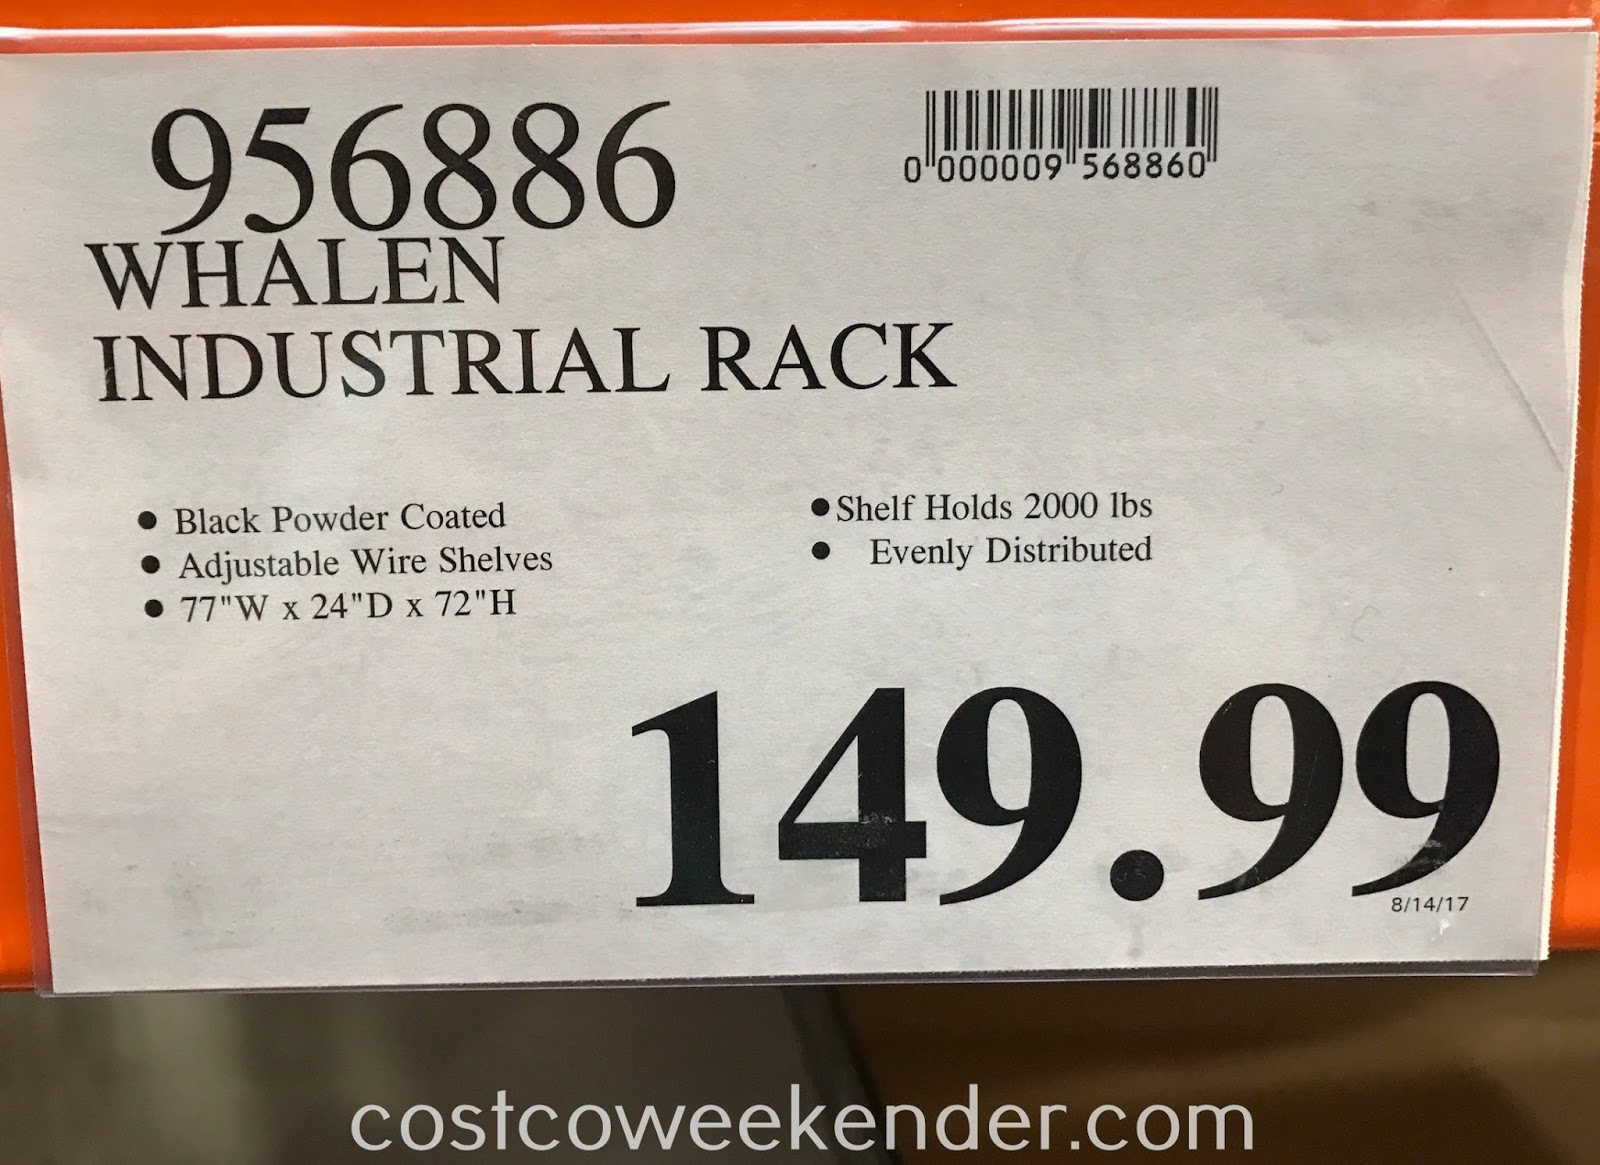 Deal for the Whalen Industrial Rack at Costco